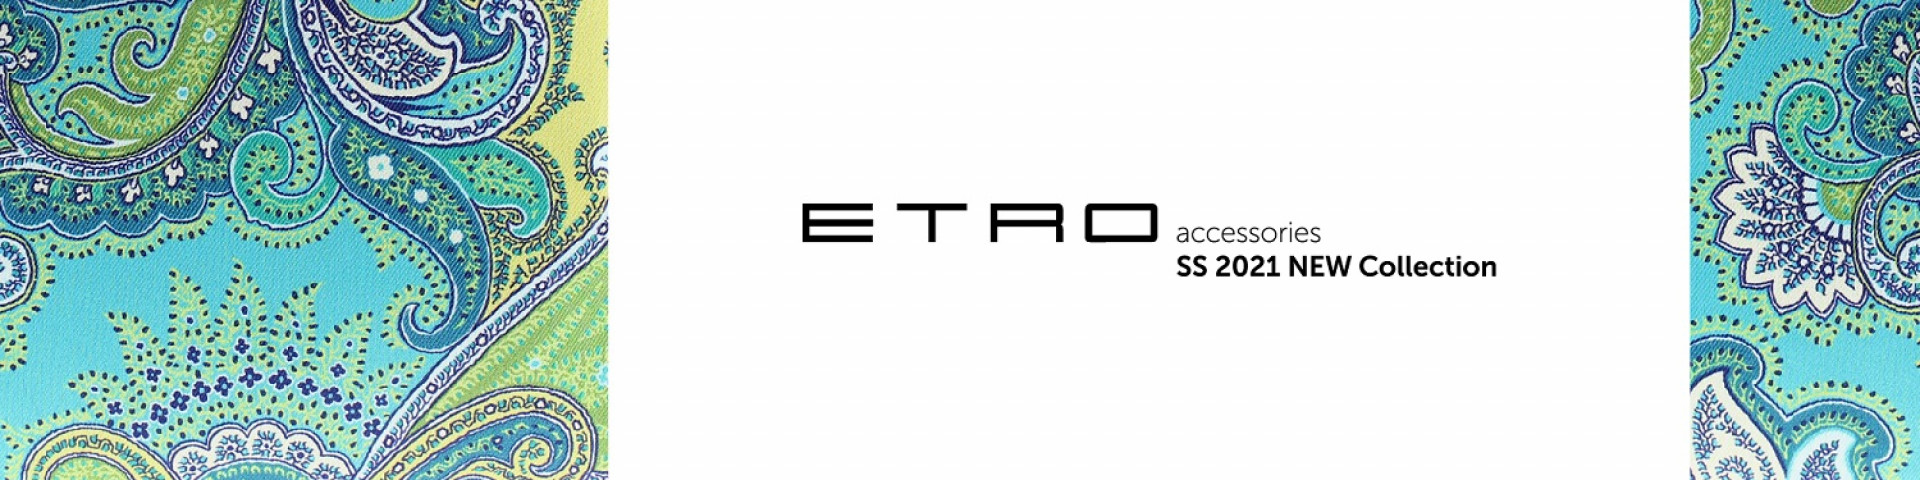 Etro - new collection